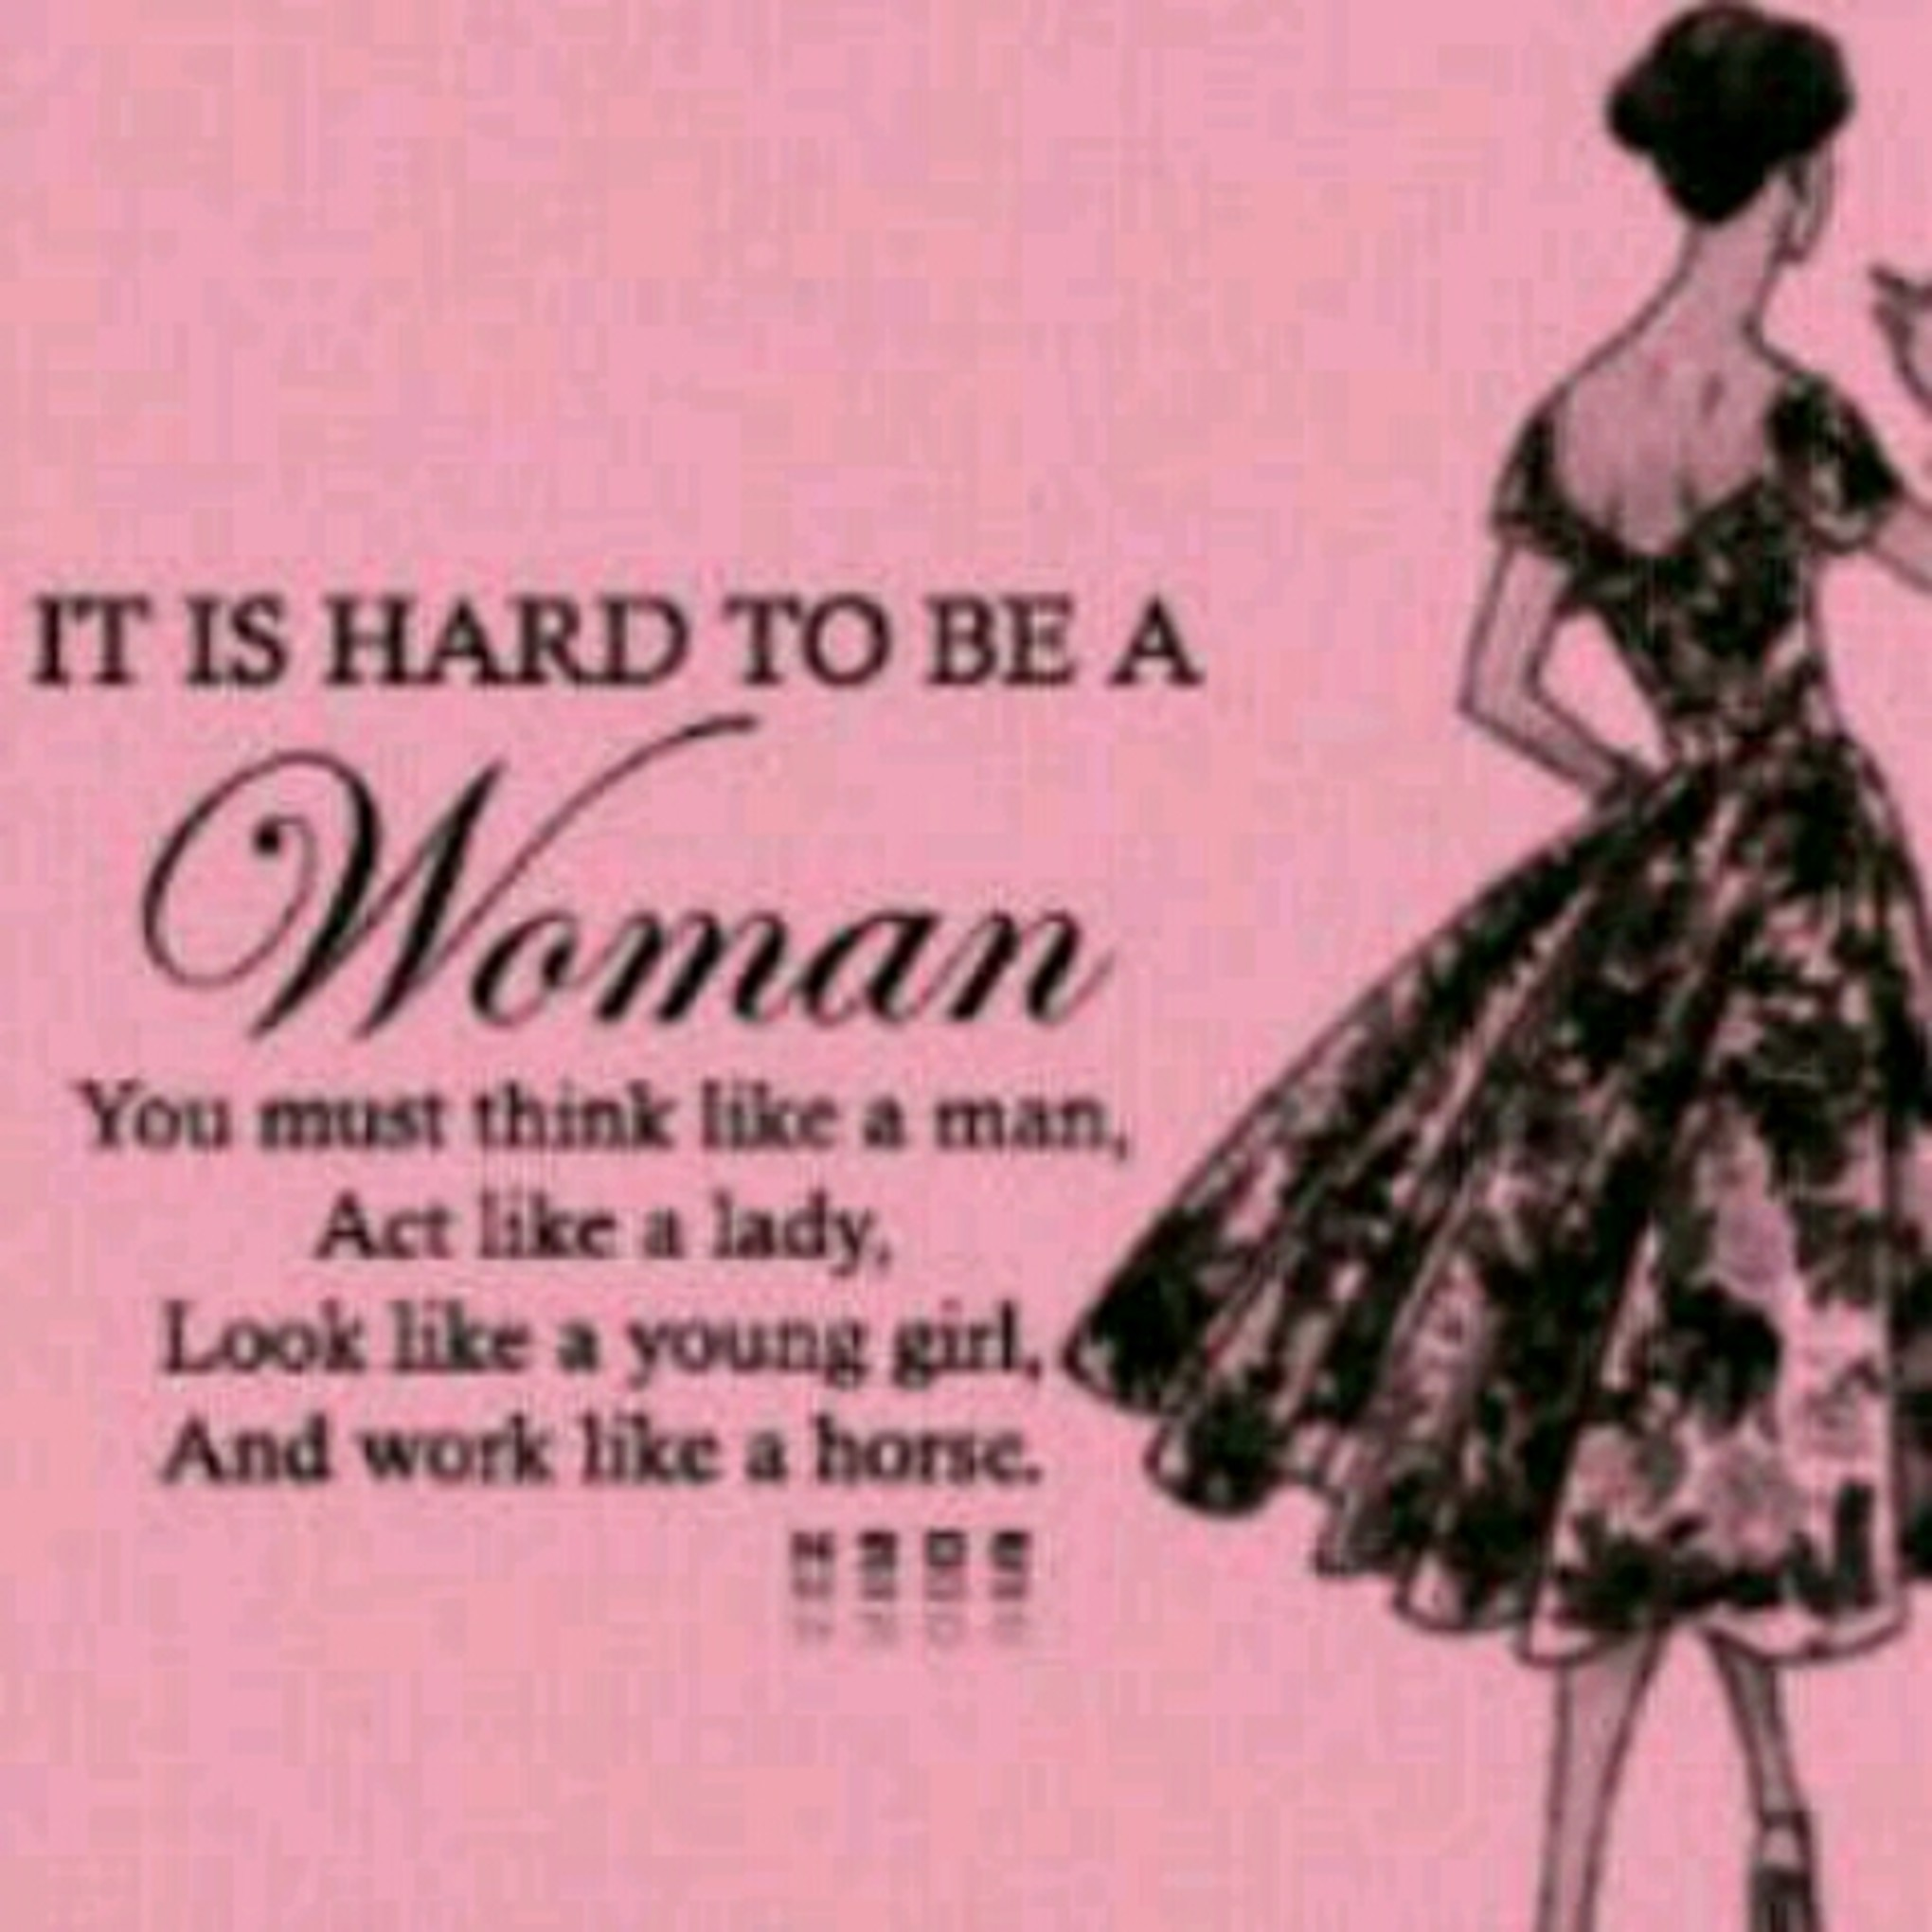 Quotes About Act Like A Lady 24 Quotes